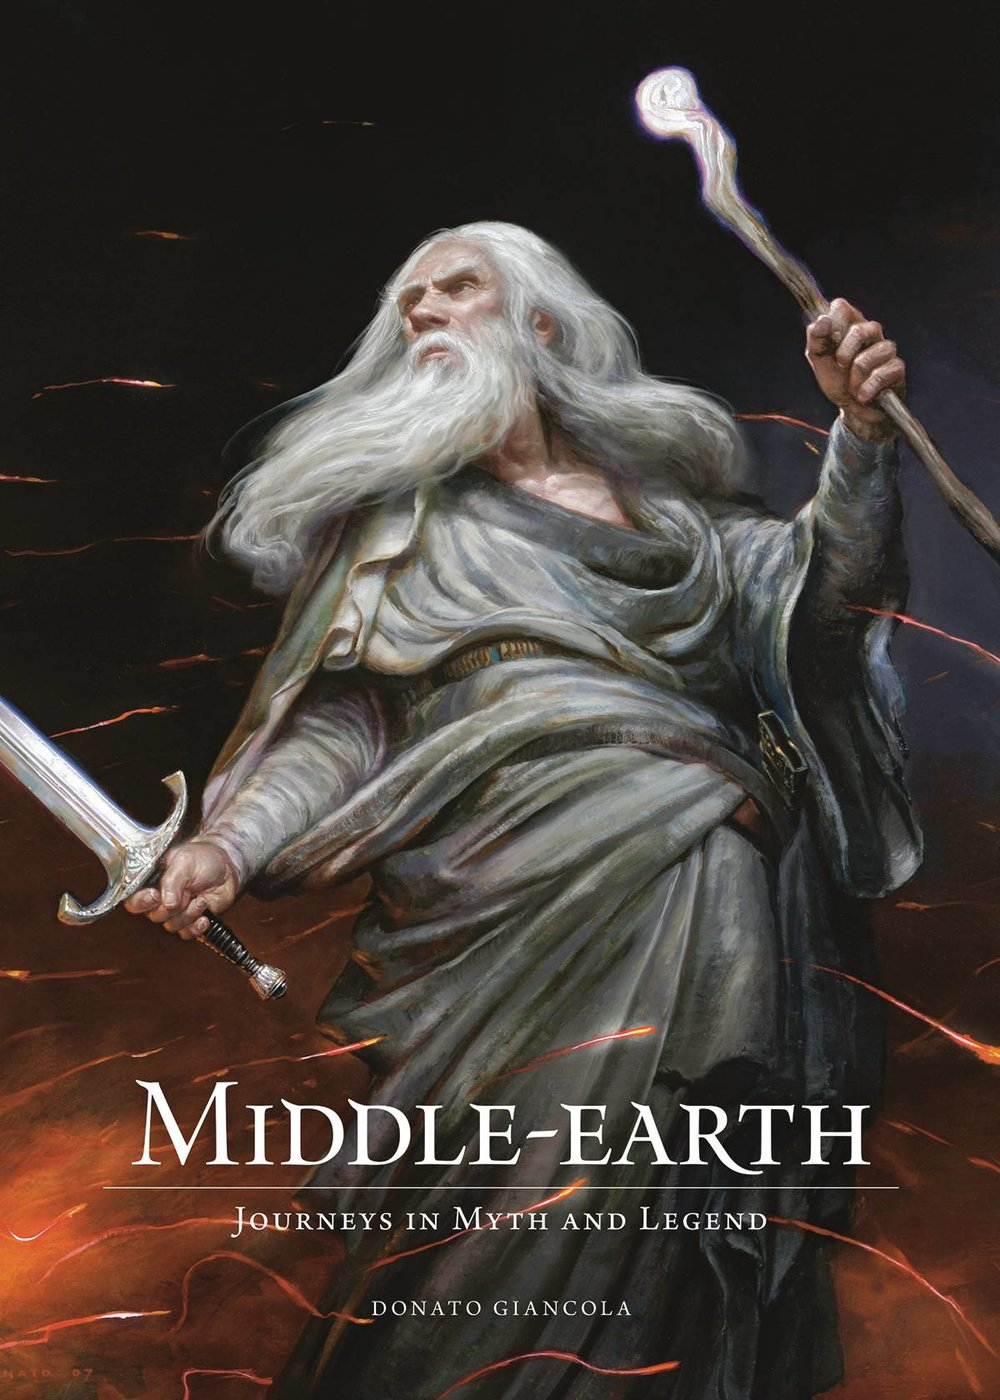 MIDDLE-EARTH HC JOURNEYS IN MYTH AND LEGEND